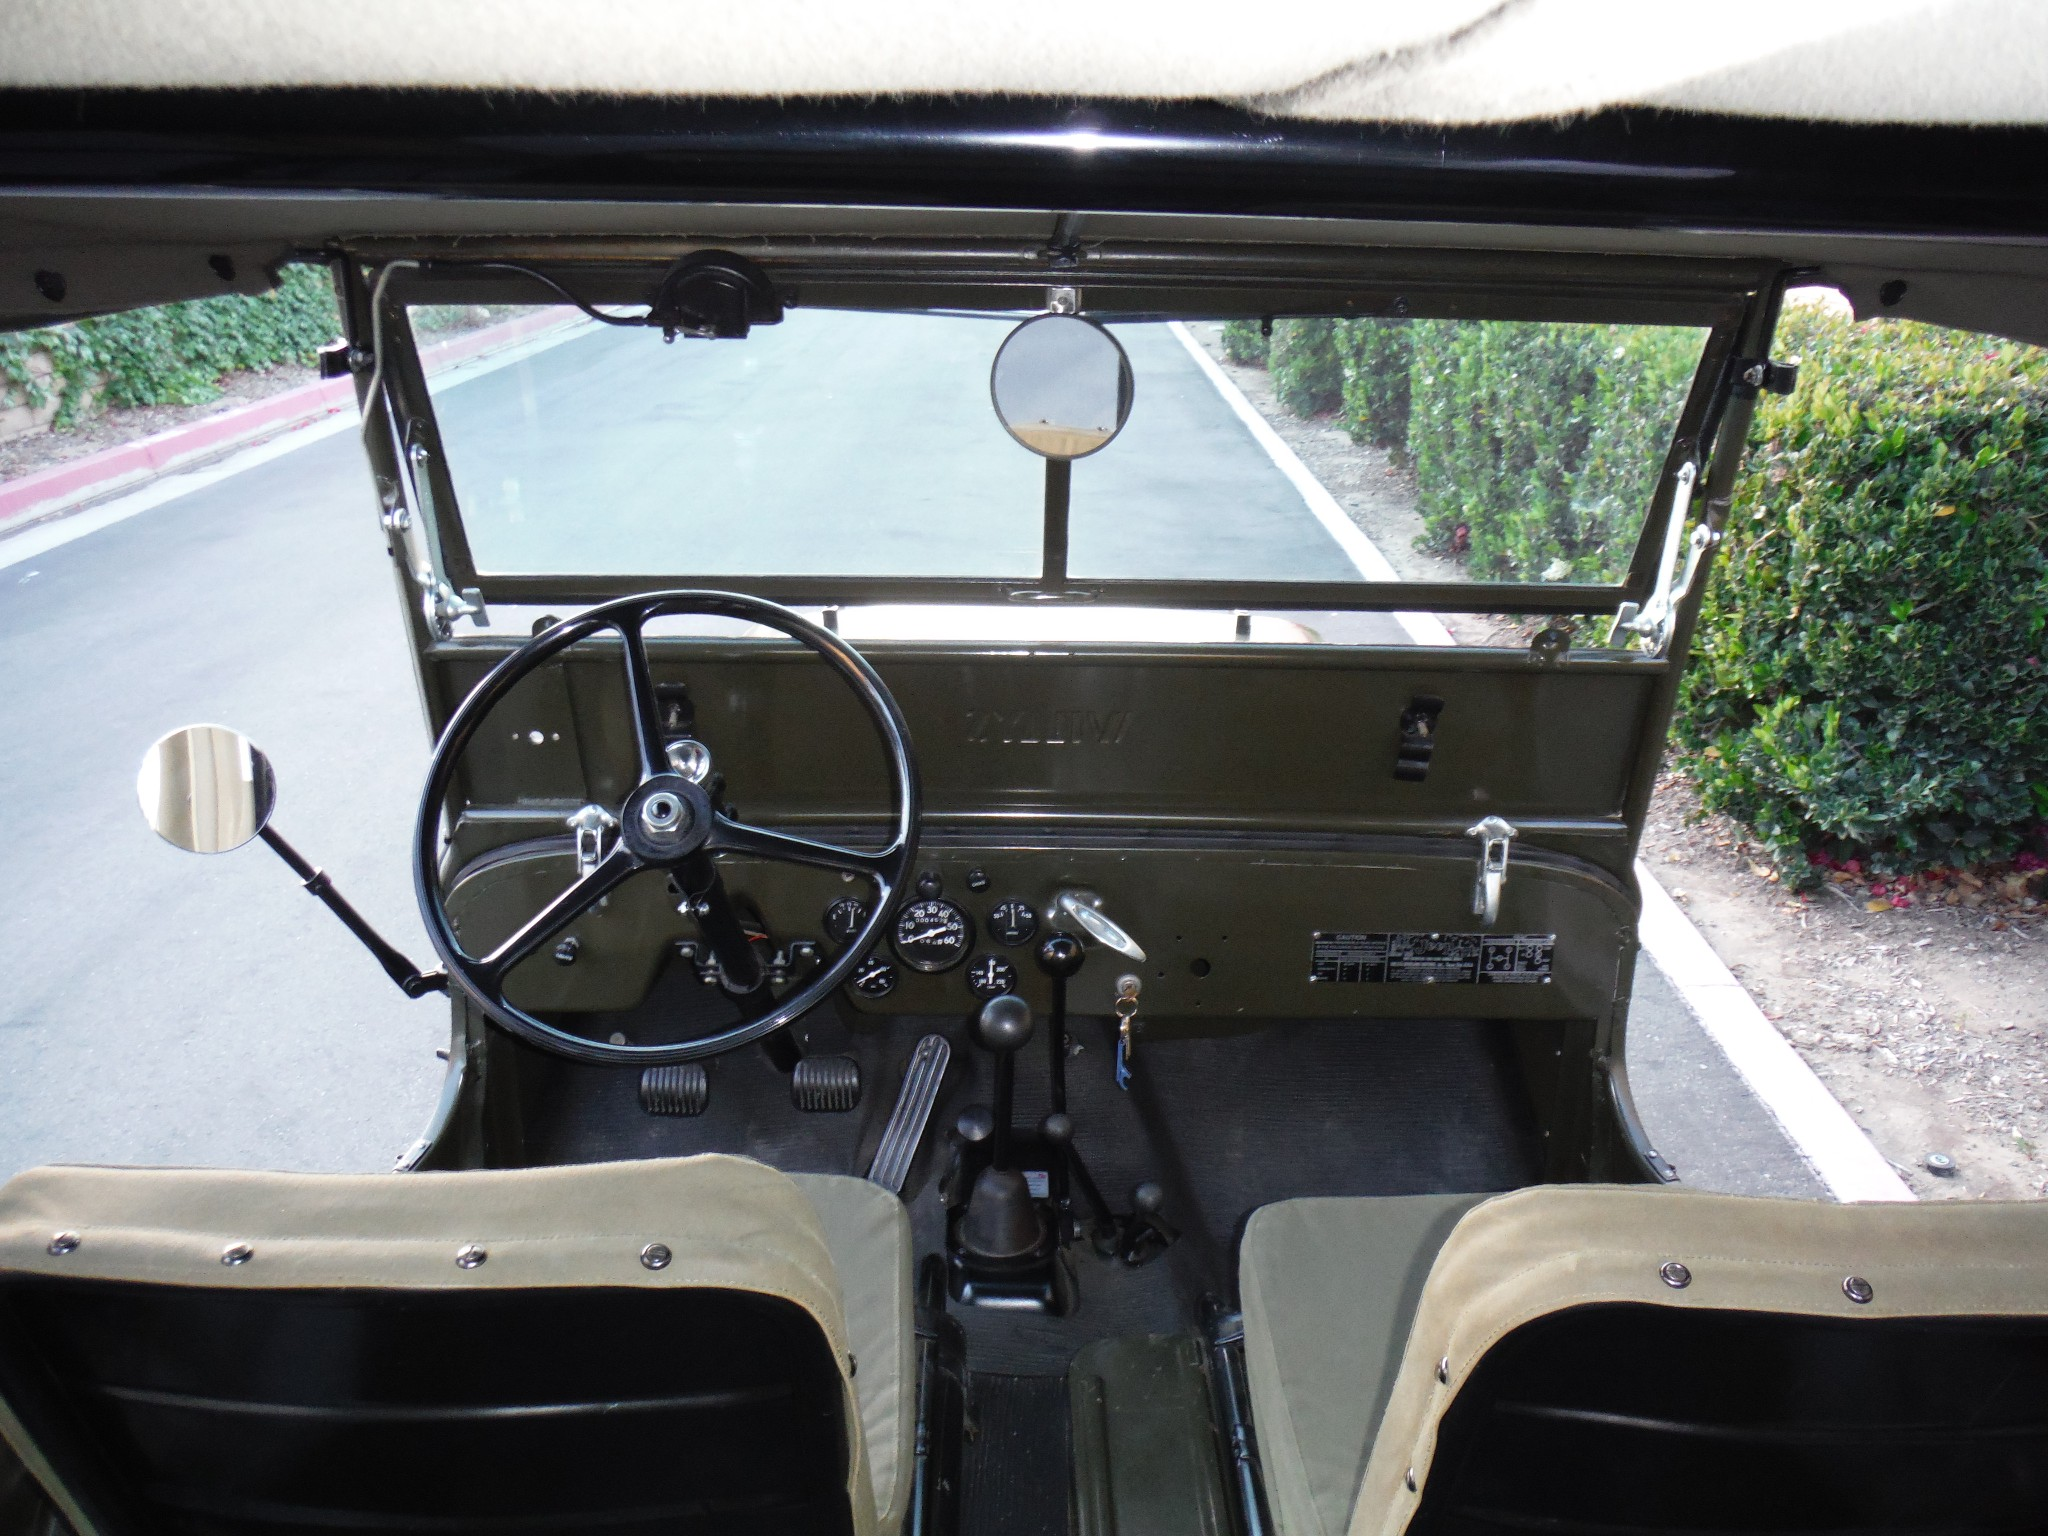 Willys Jeep Cj2a Revivaler Rear Seat The Additional Levers Include Control For Warn Overdrive